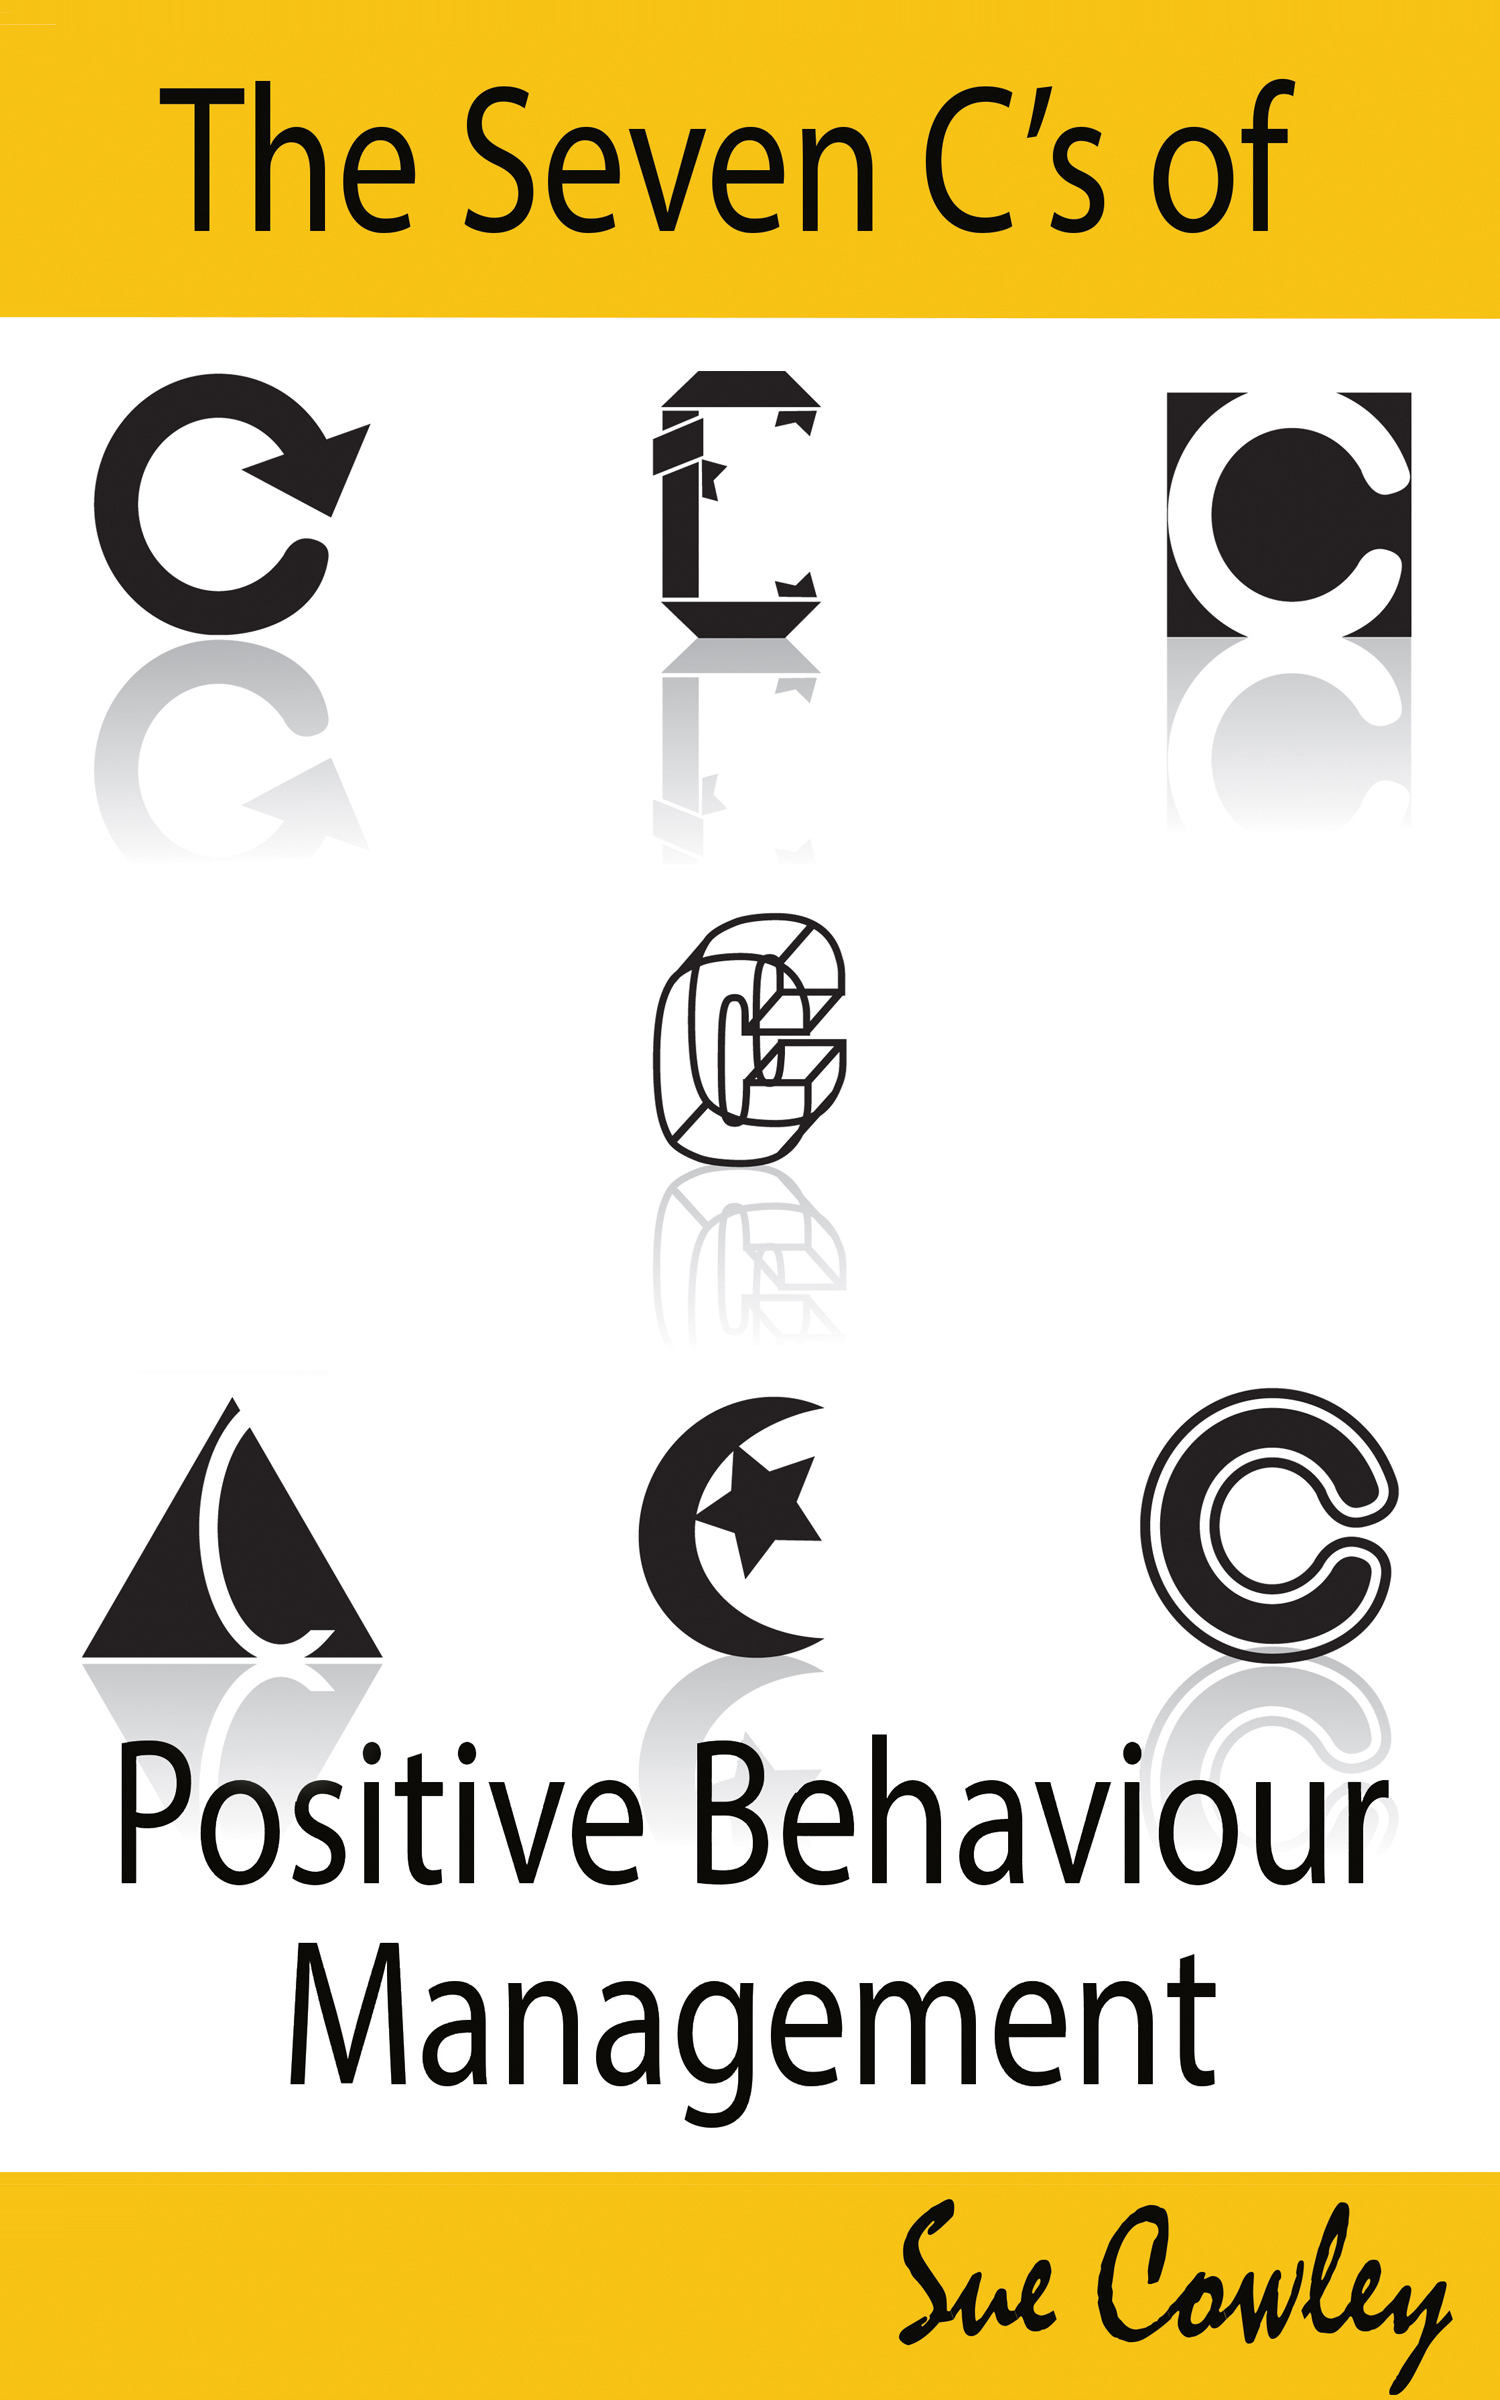 The Seven C's of Positive Behaviour Management